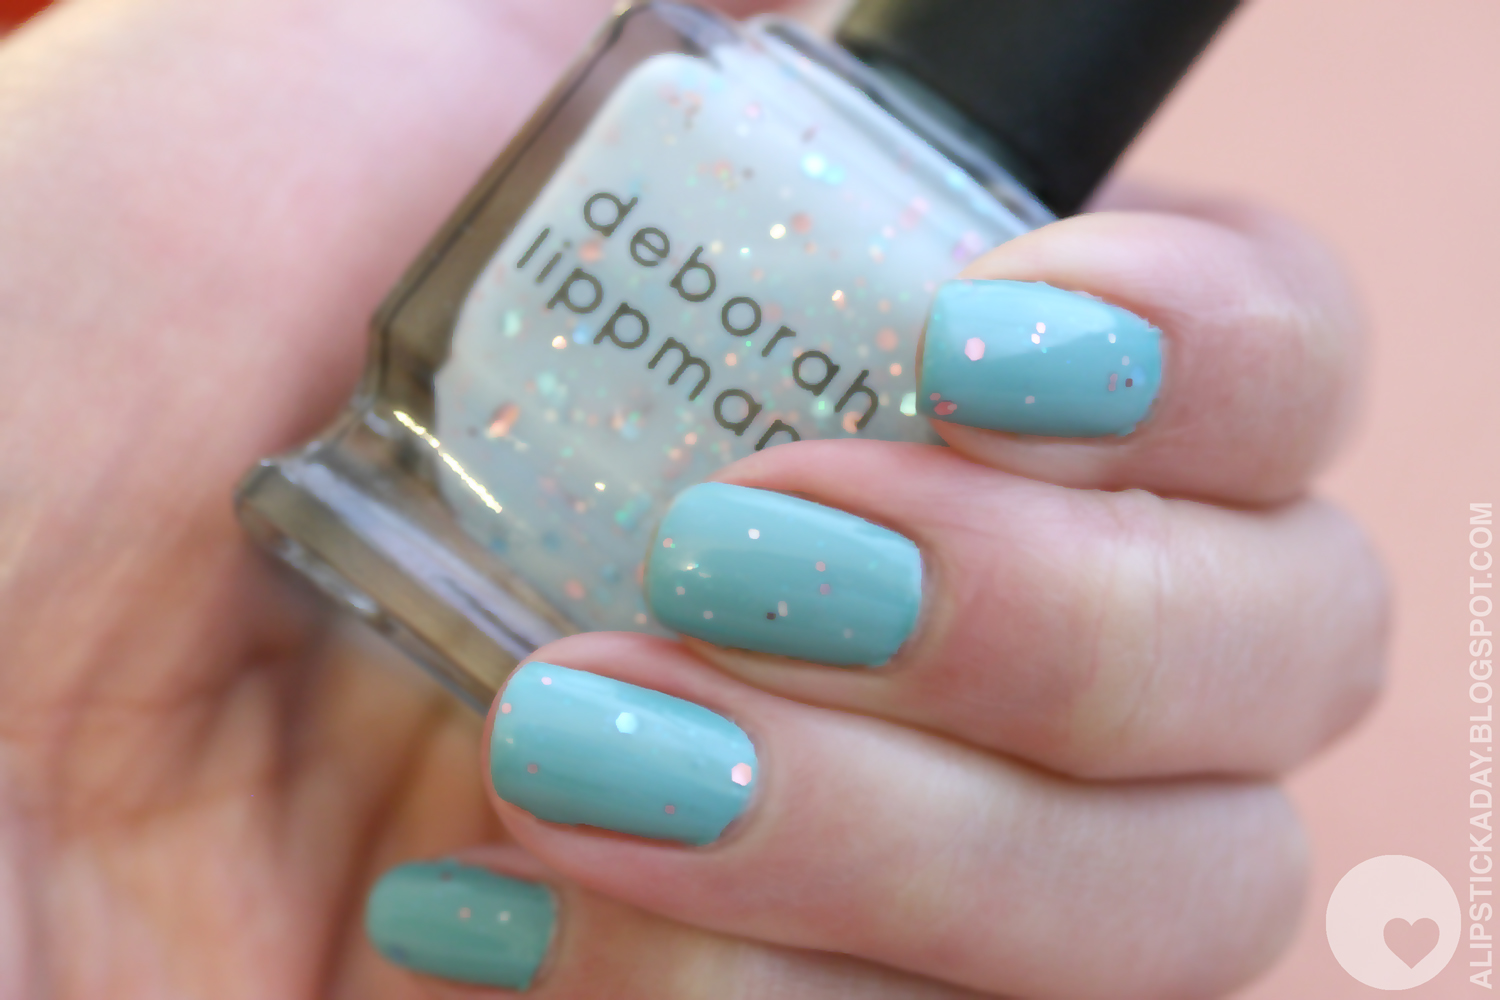 A LIPSTICK A DAY | Nails of the day #10 - Deborah Lippmann Glitter ...